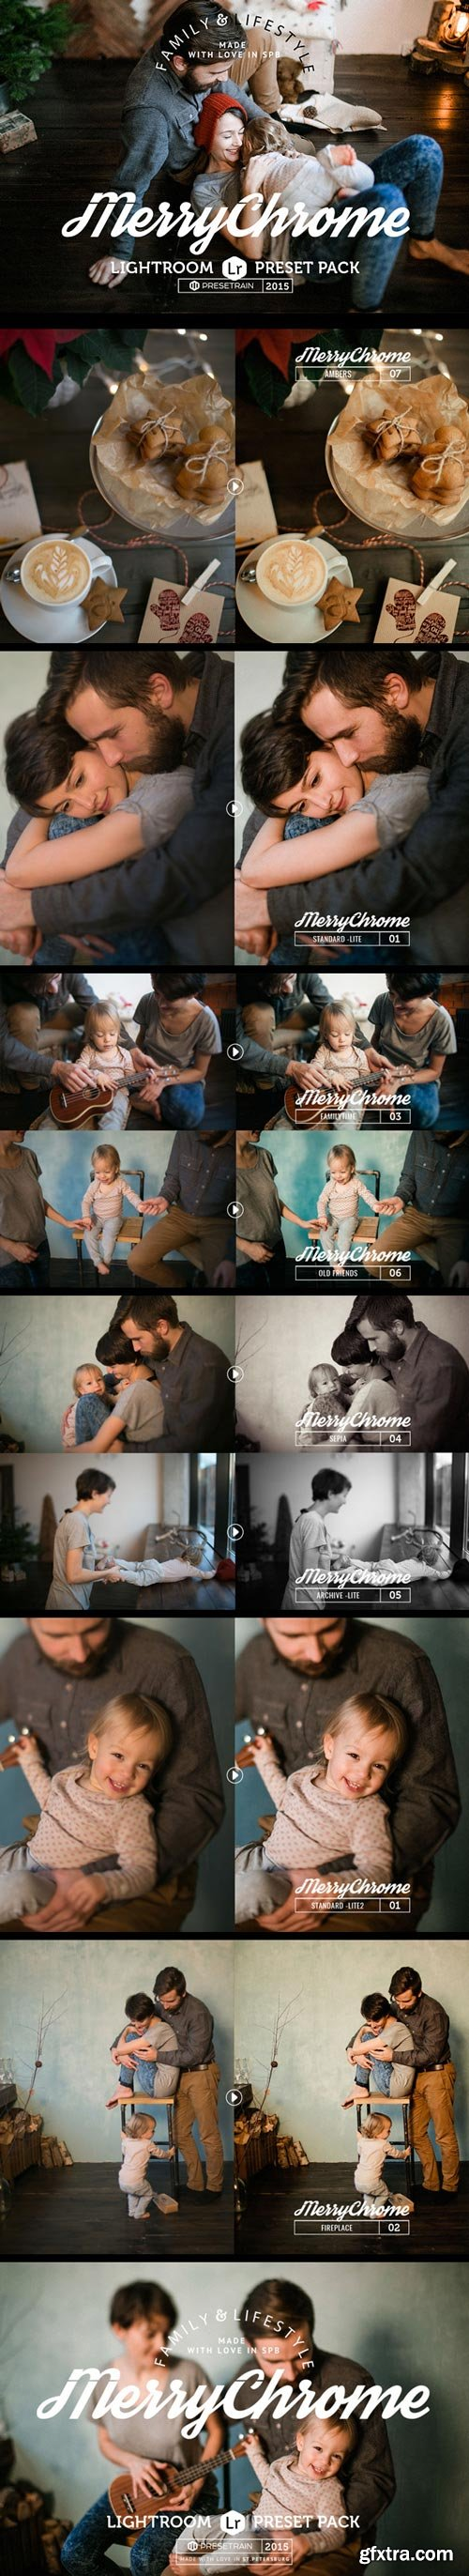 GraphicRiver - Merrychrome Lightroom Preset Pack - 16121692